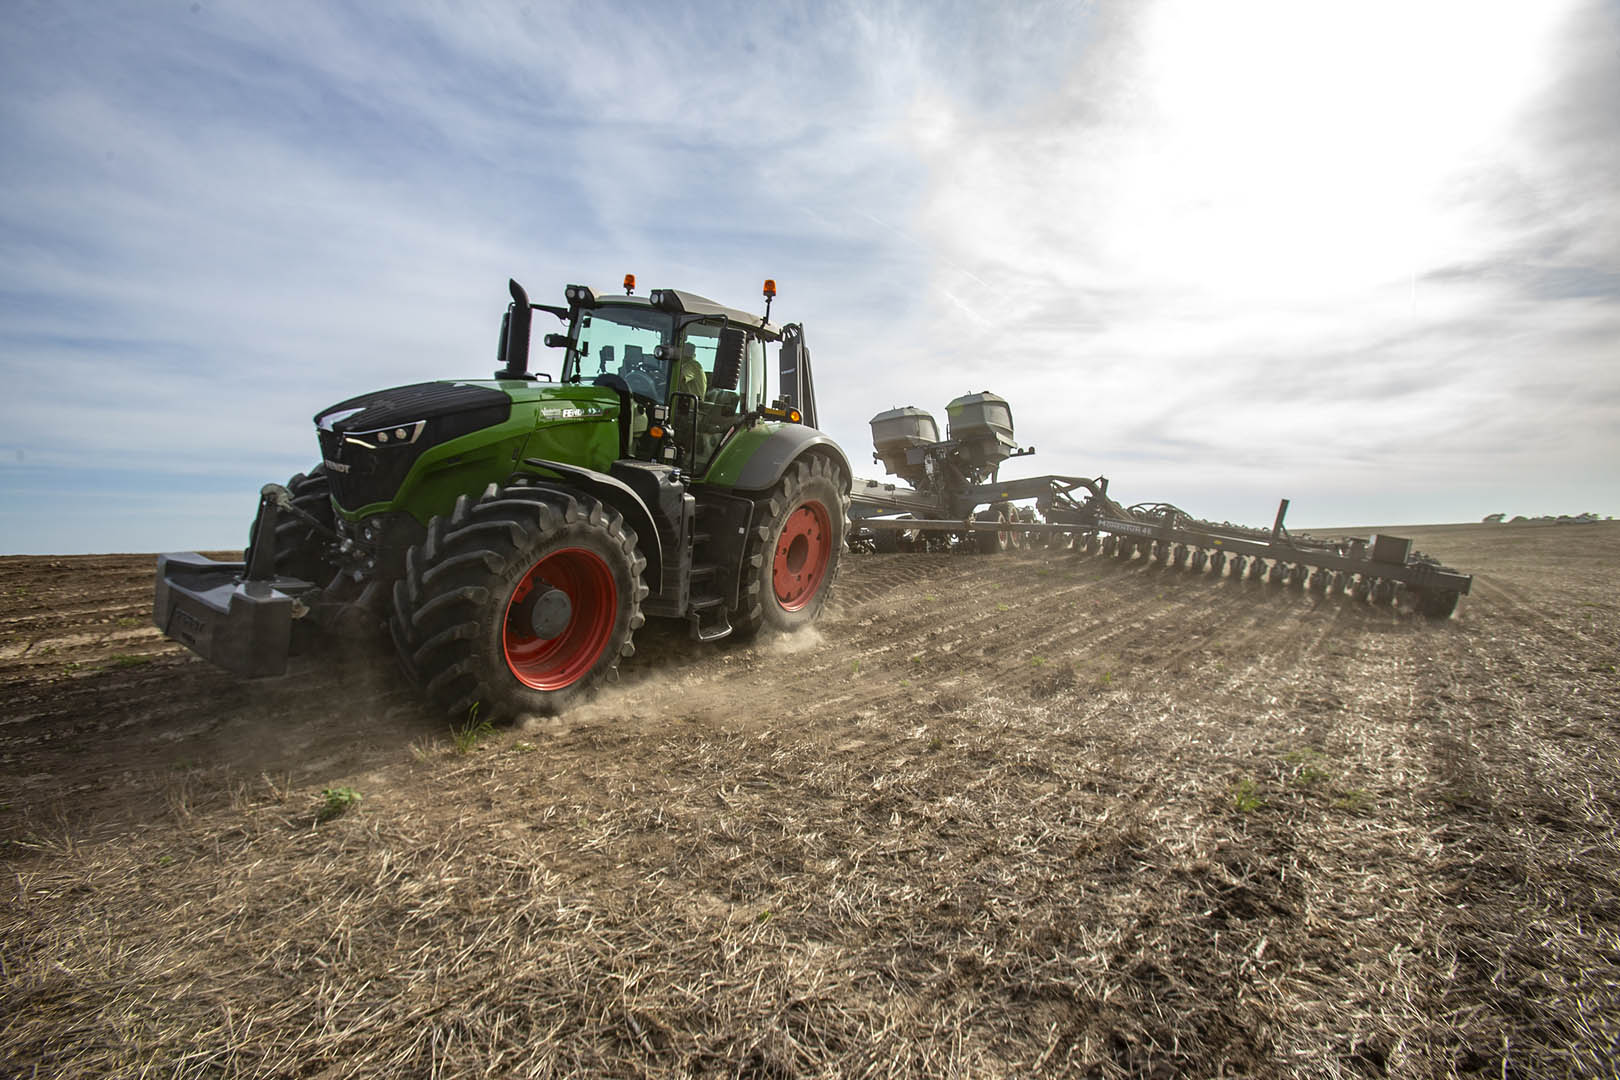 Fendt Momentum Planter working in the field